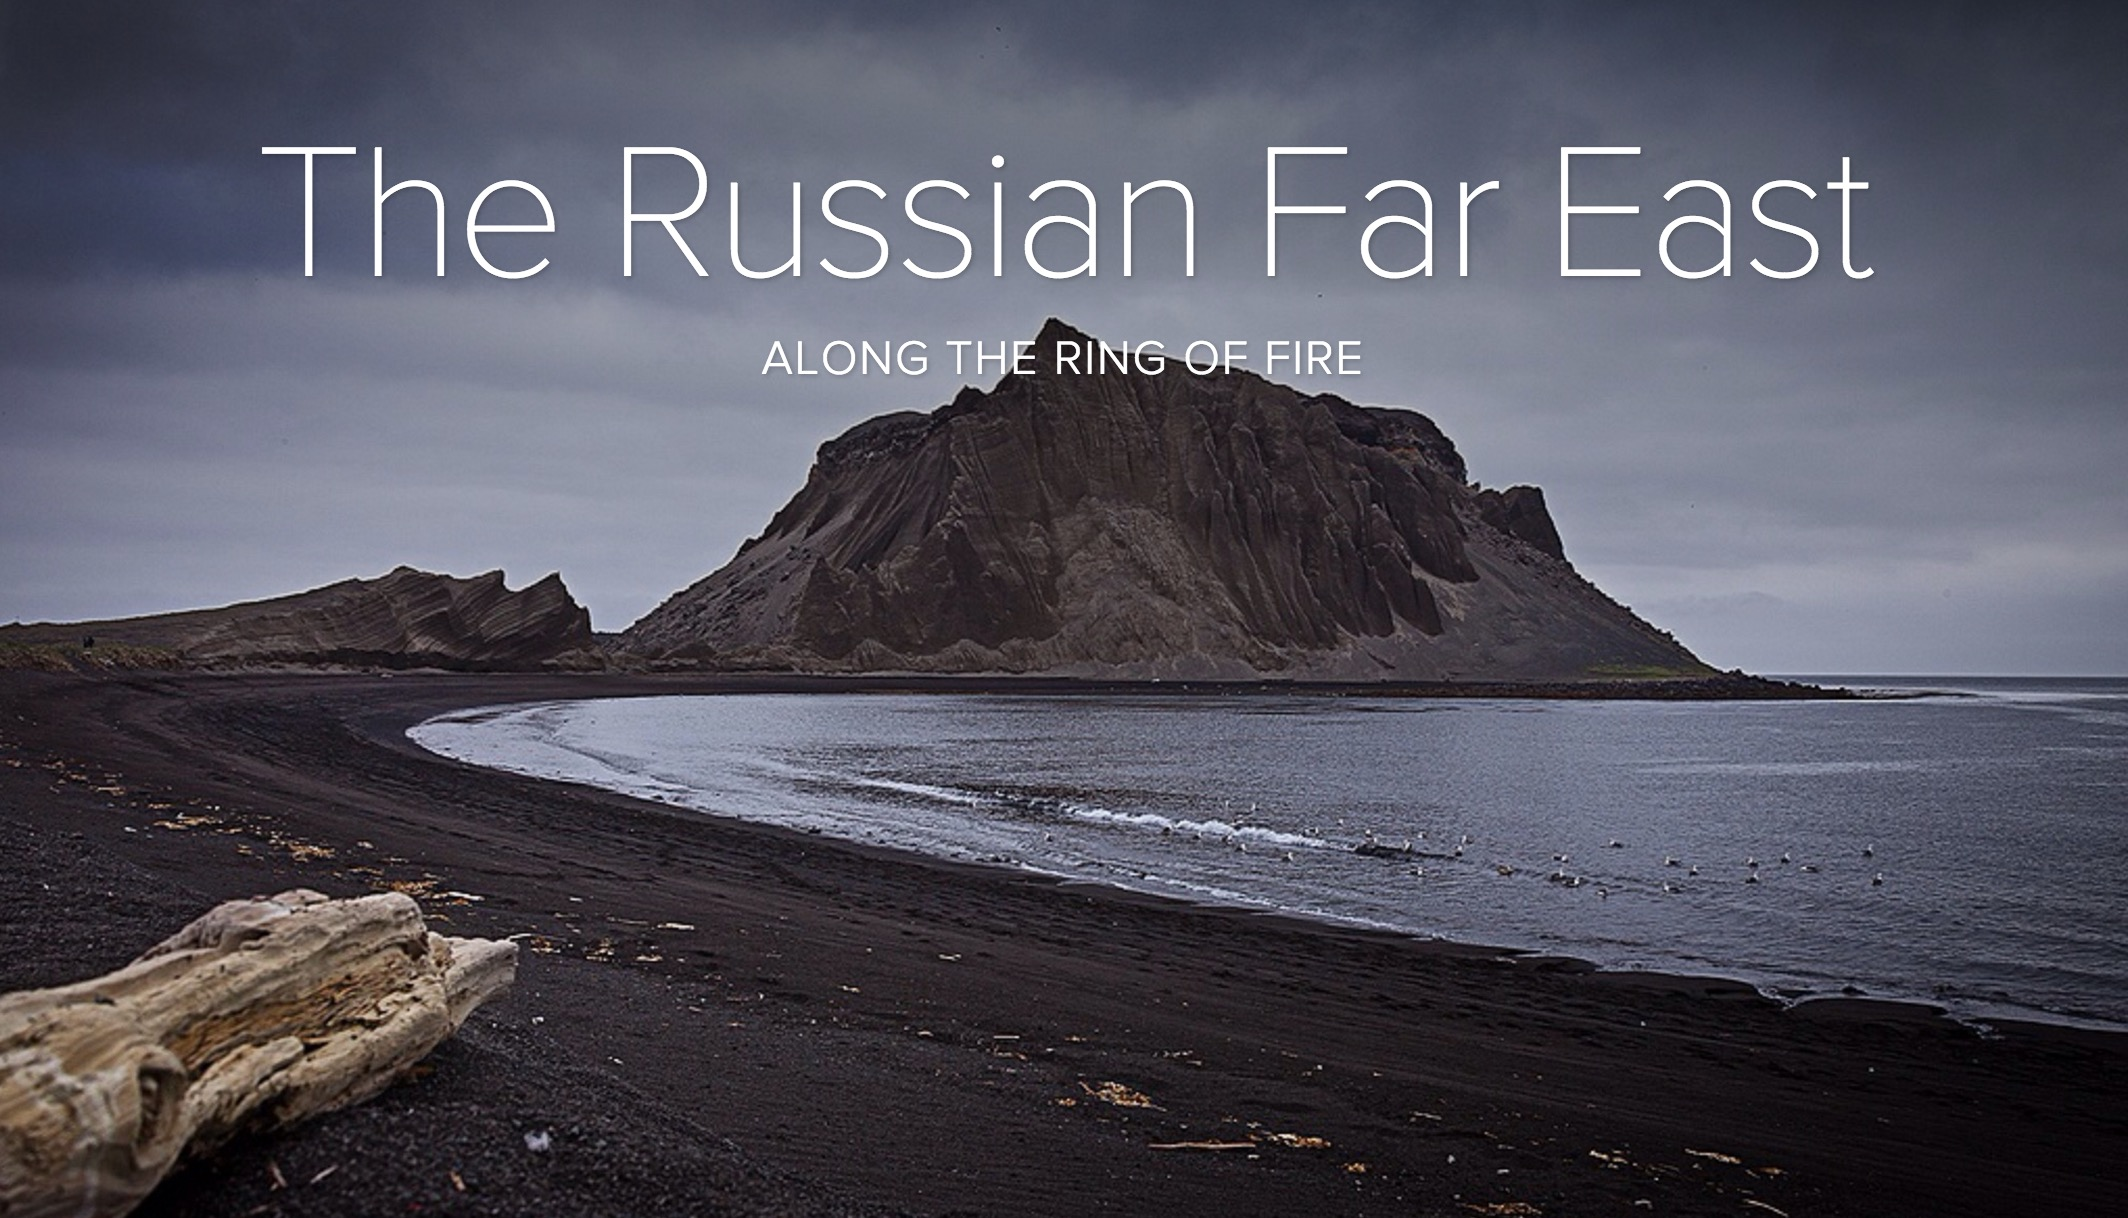 The Russian Far East